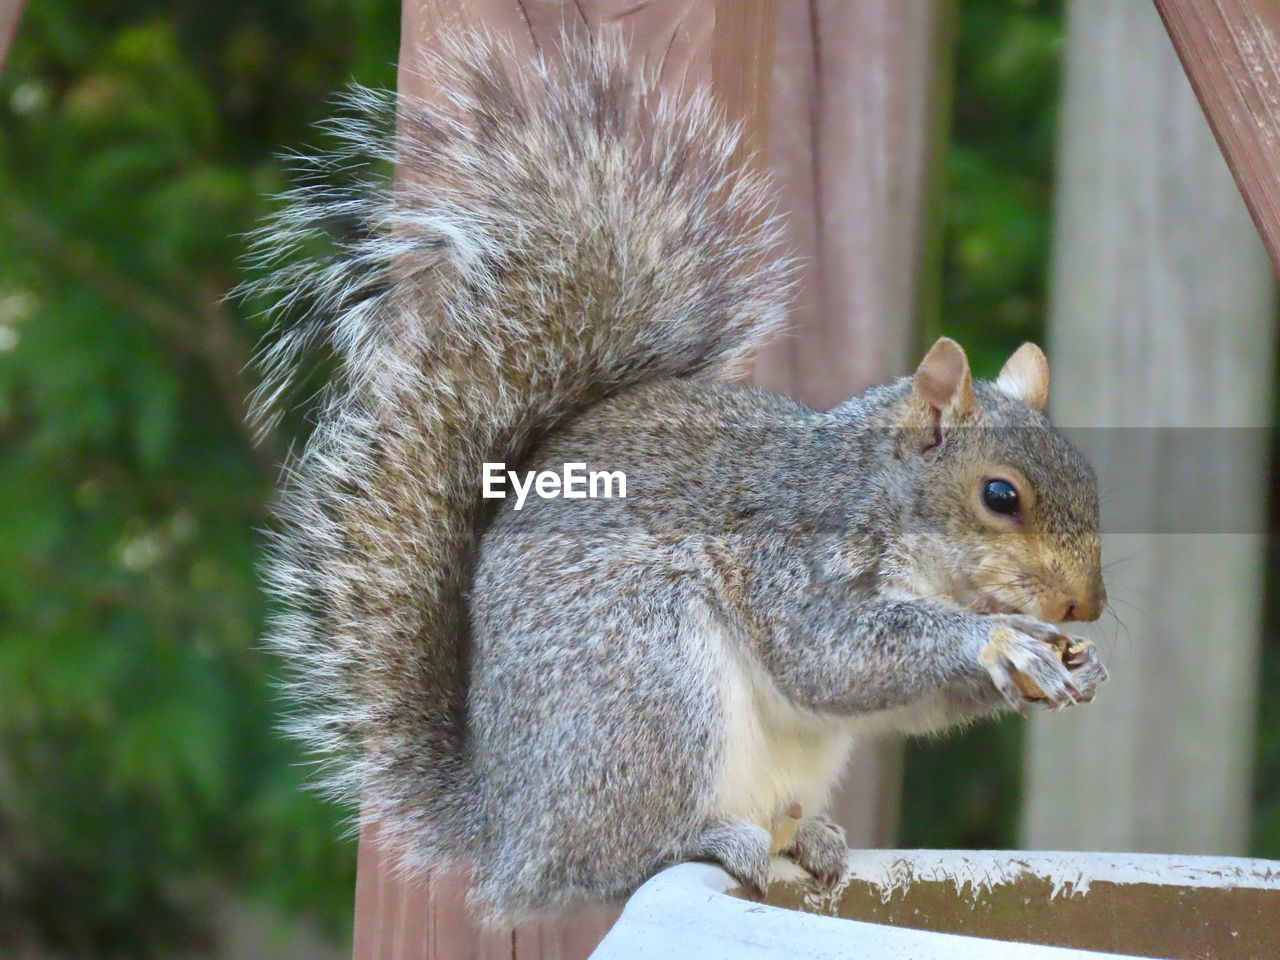 animal wildlife, mammal, animals in the wild, one animal, focus on foreground, rodent, squirrel, close-up, vertebrate, day, no people, side view, holding, outdoors, nature, eating, tree, profile view, whisker